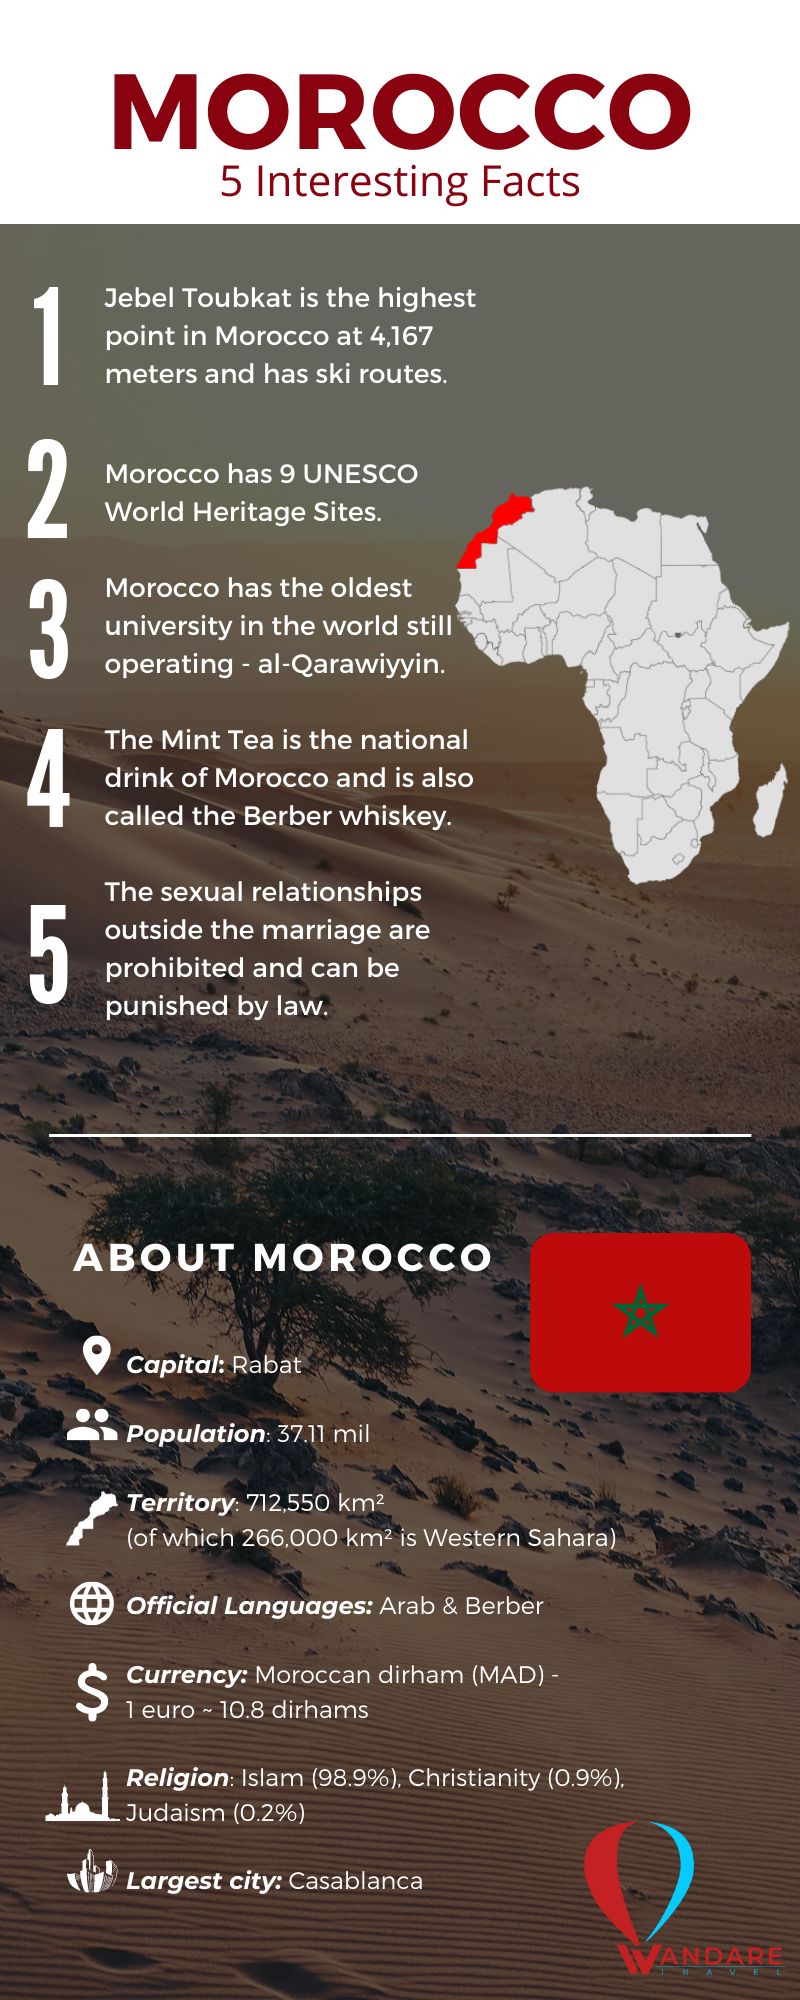 Infographic: 5 Interesting Facts About Morocco By Wandare Travel